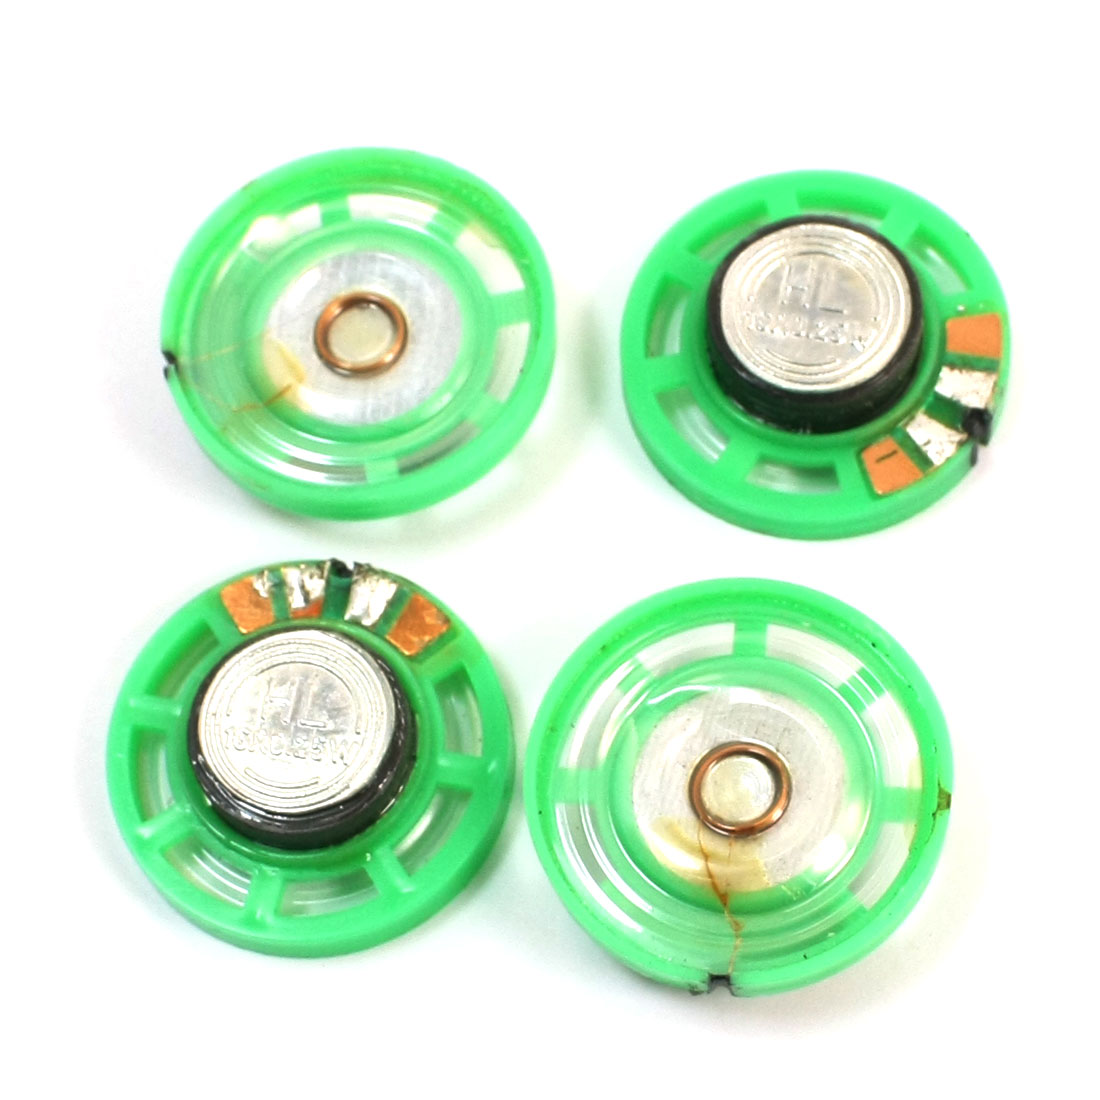 4Pcs 29mm Round Green Plastic Slim Shell External Magnetic Type Electronic Toys Speaker Amplifier 16 Ohm 0.25W